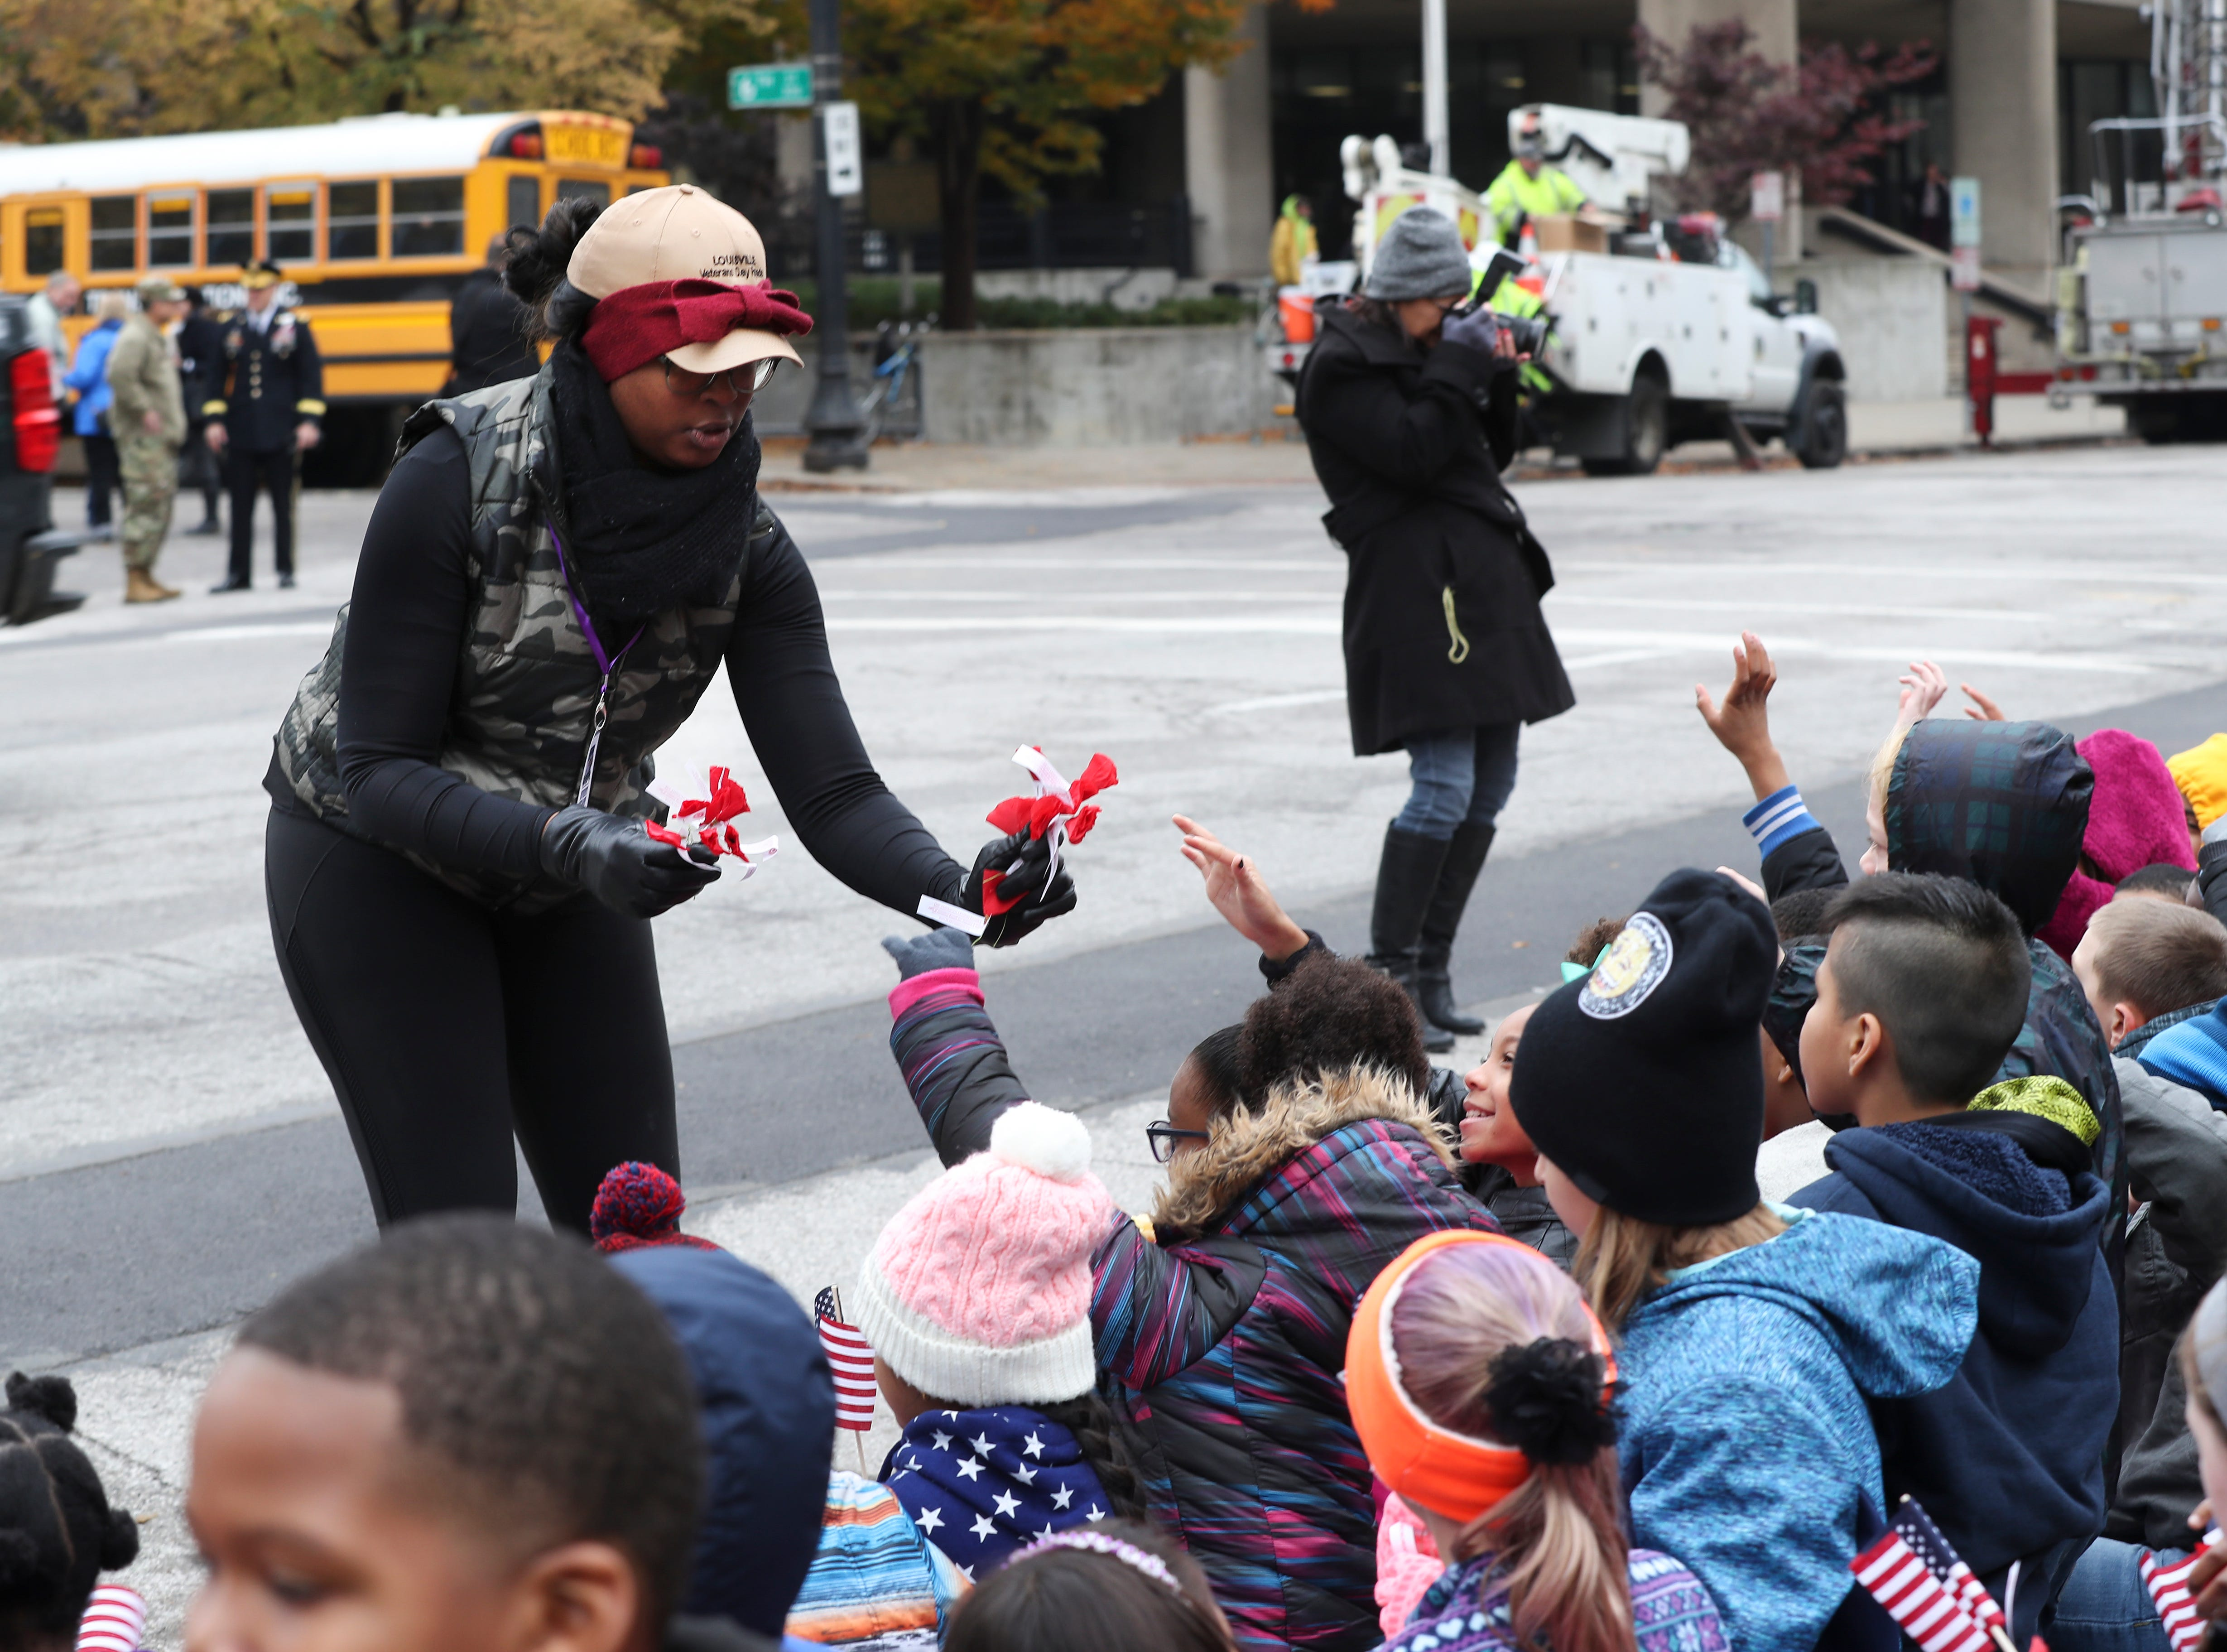 Shia Daniel handed out Poppy flowers, a symbol of peace, during the Veterans Day Parade on Jefferson Street.  Nov. 9, 2018